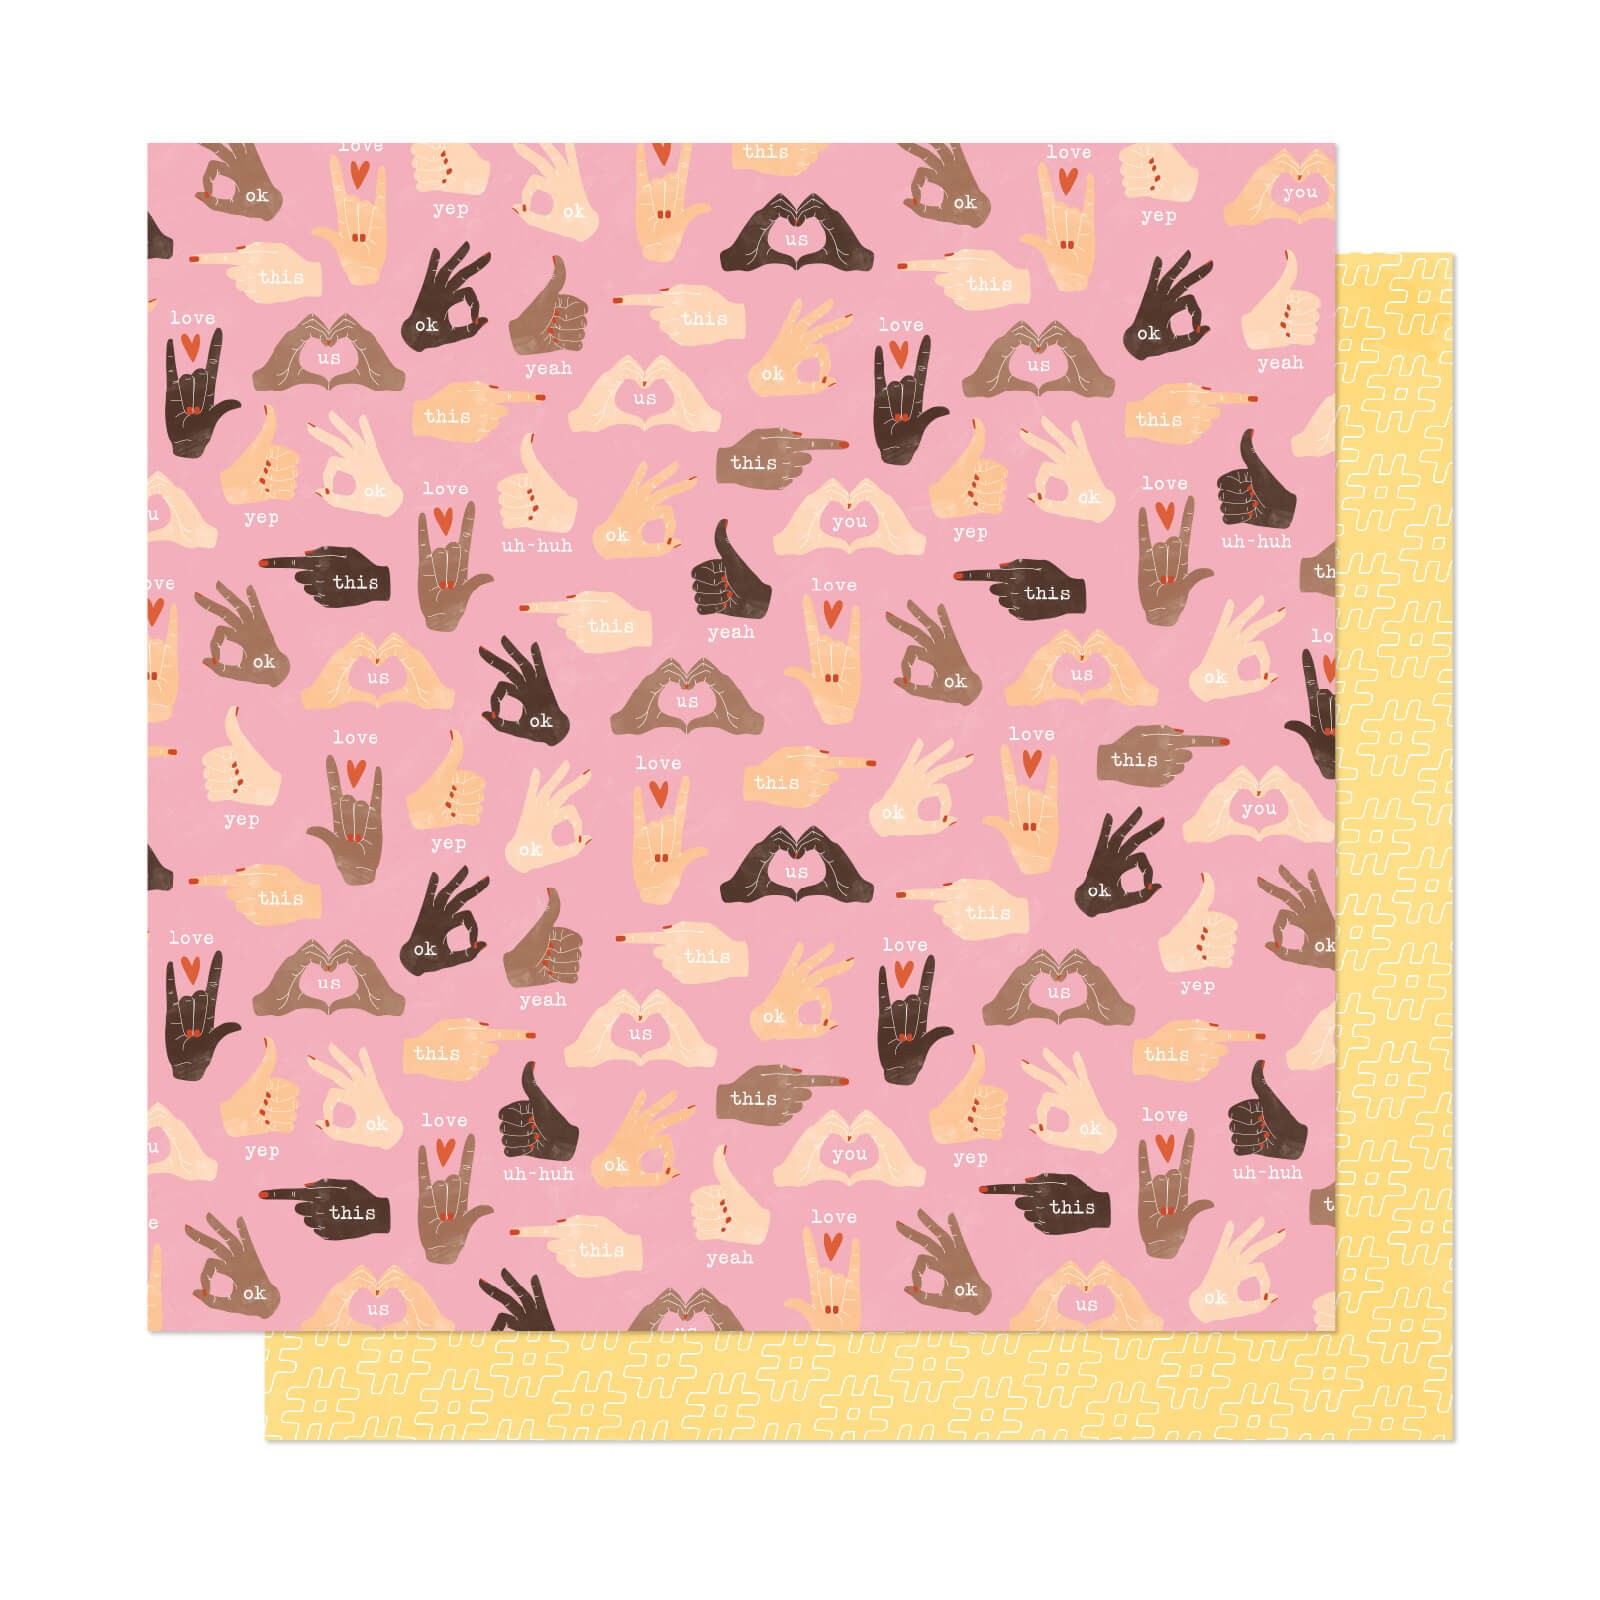 Papel Estampado Doble Cara 12x12 It's All Good Thumbs Up